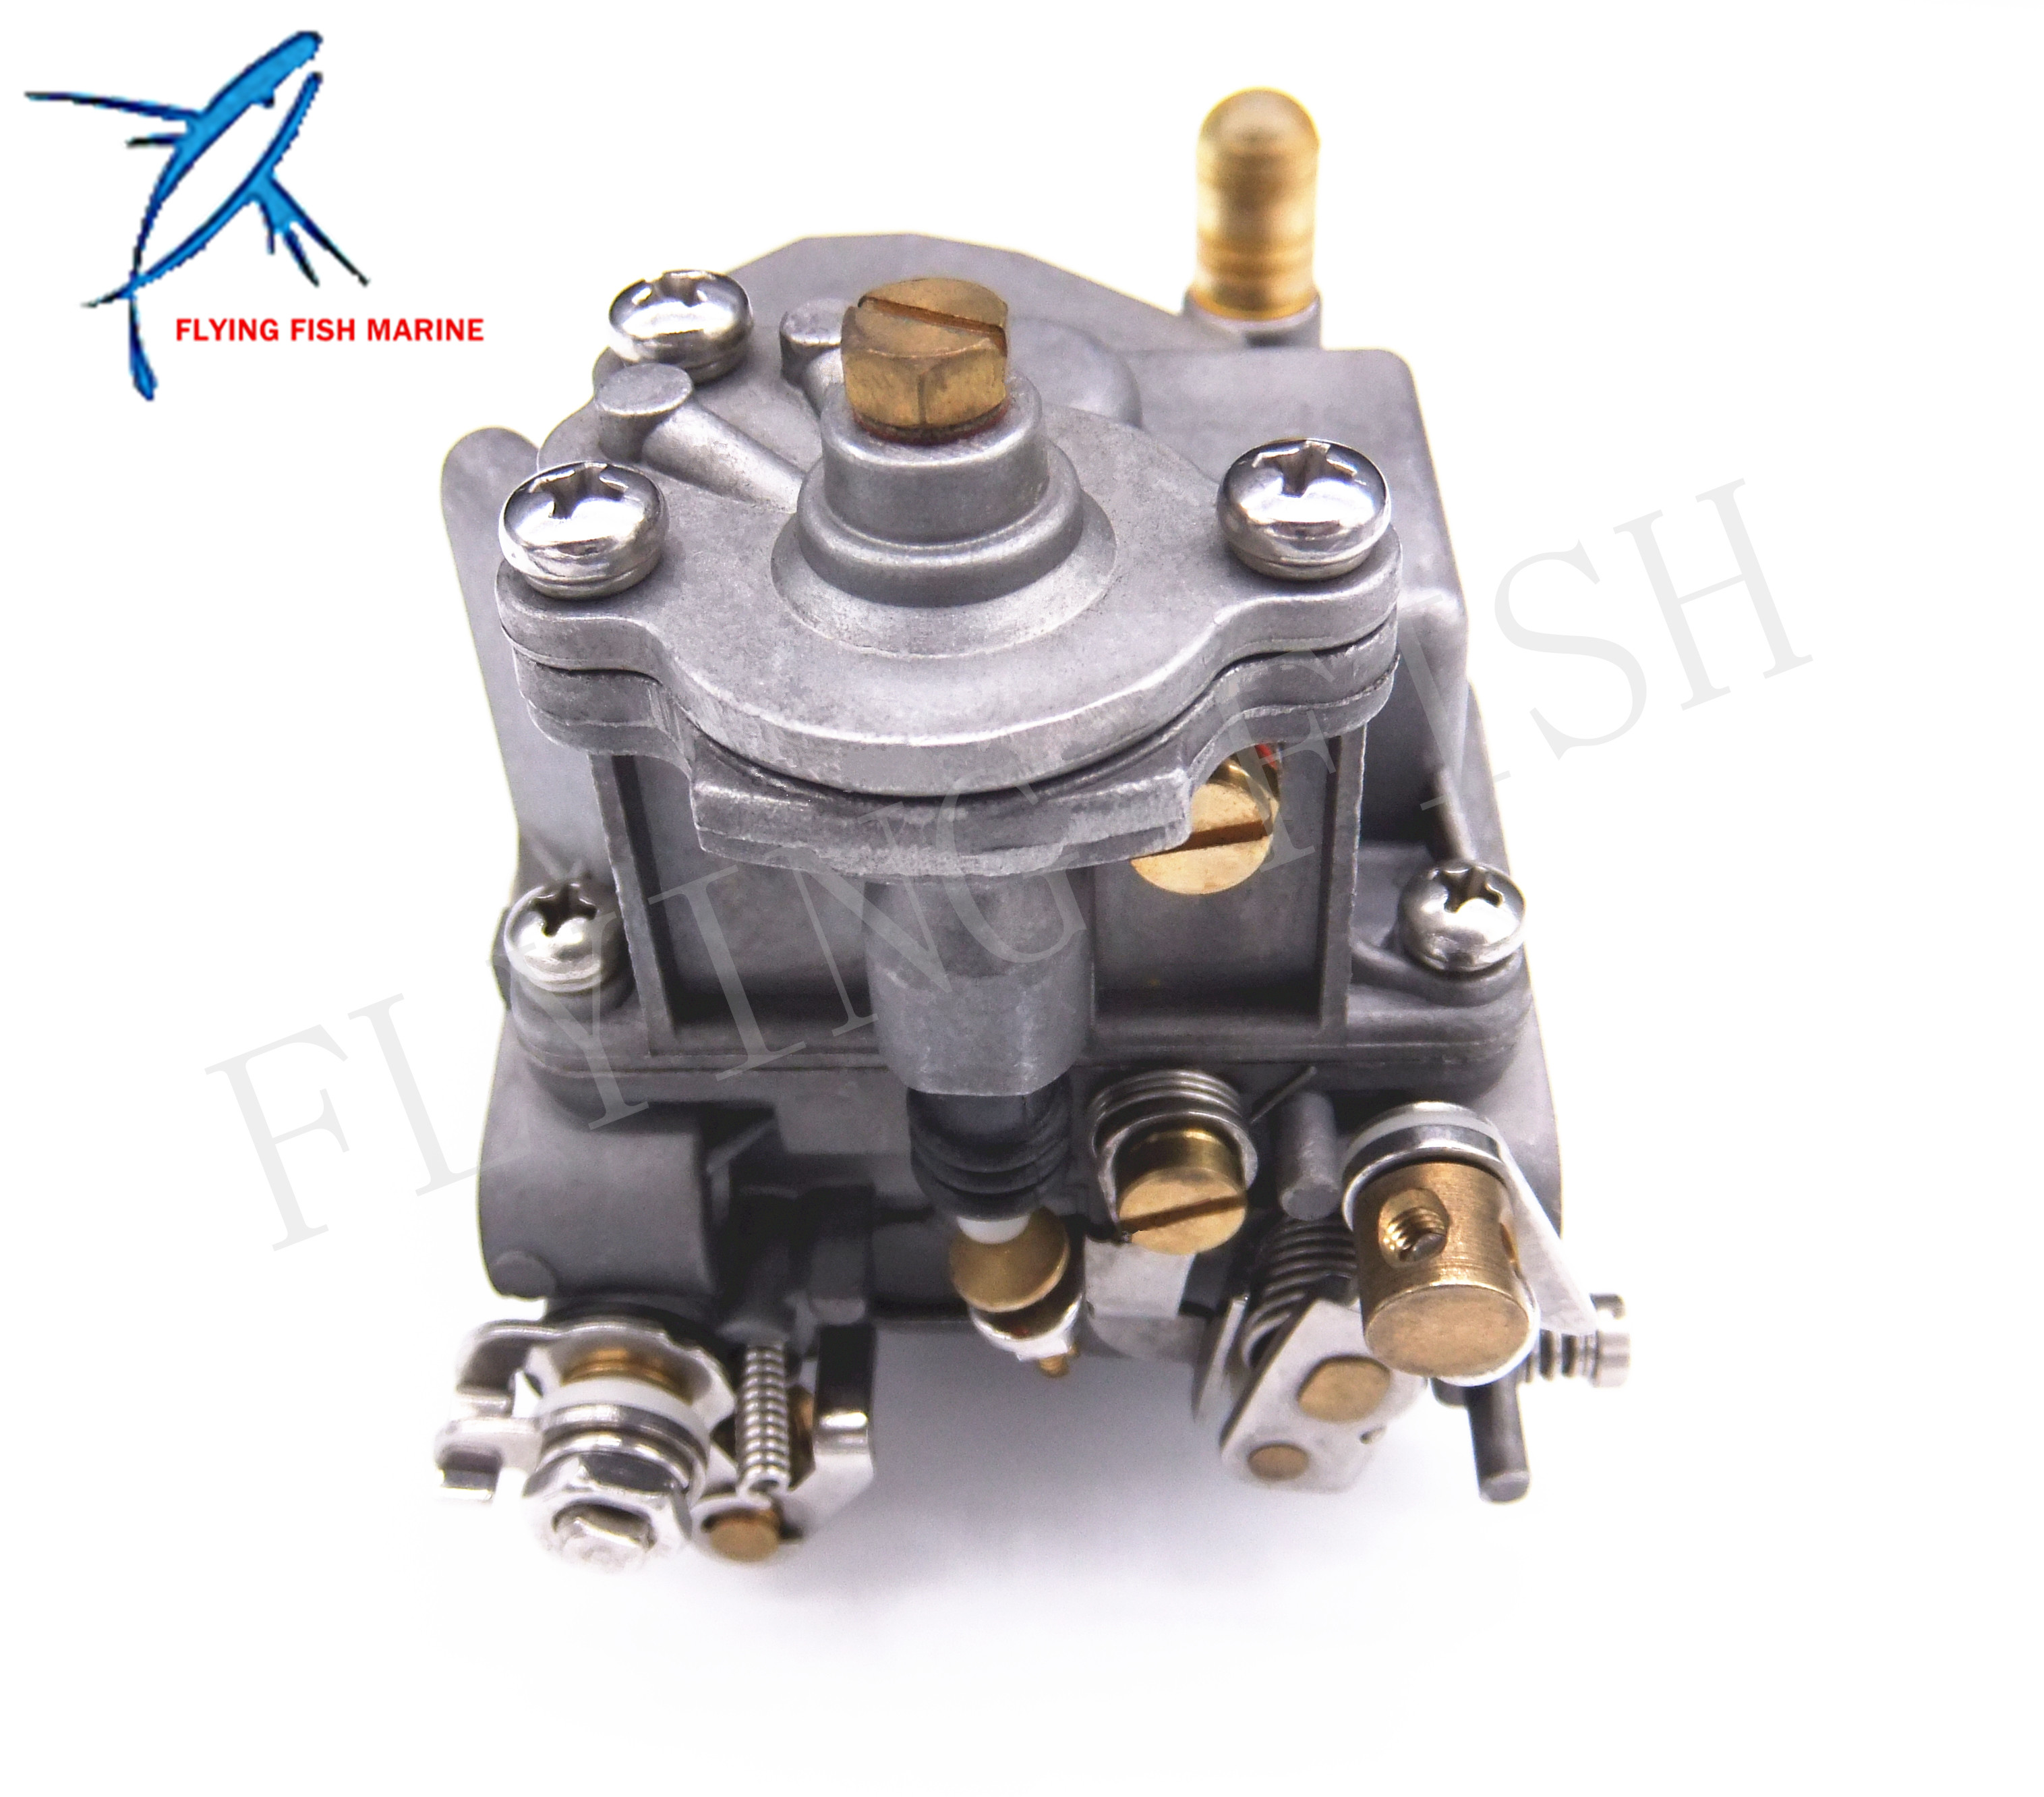 Outboard Engine 66M-14301-12-00 Carburetor Assy for Yamaha 4-stroke 15hp F15 Electric Start Boat Motor Free Shipping 66m 14301 11 66m 14301 00 carburetor assy for yamaha 4 stroke 15hp f15 outboard motors